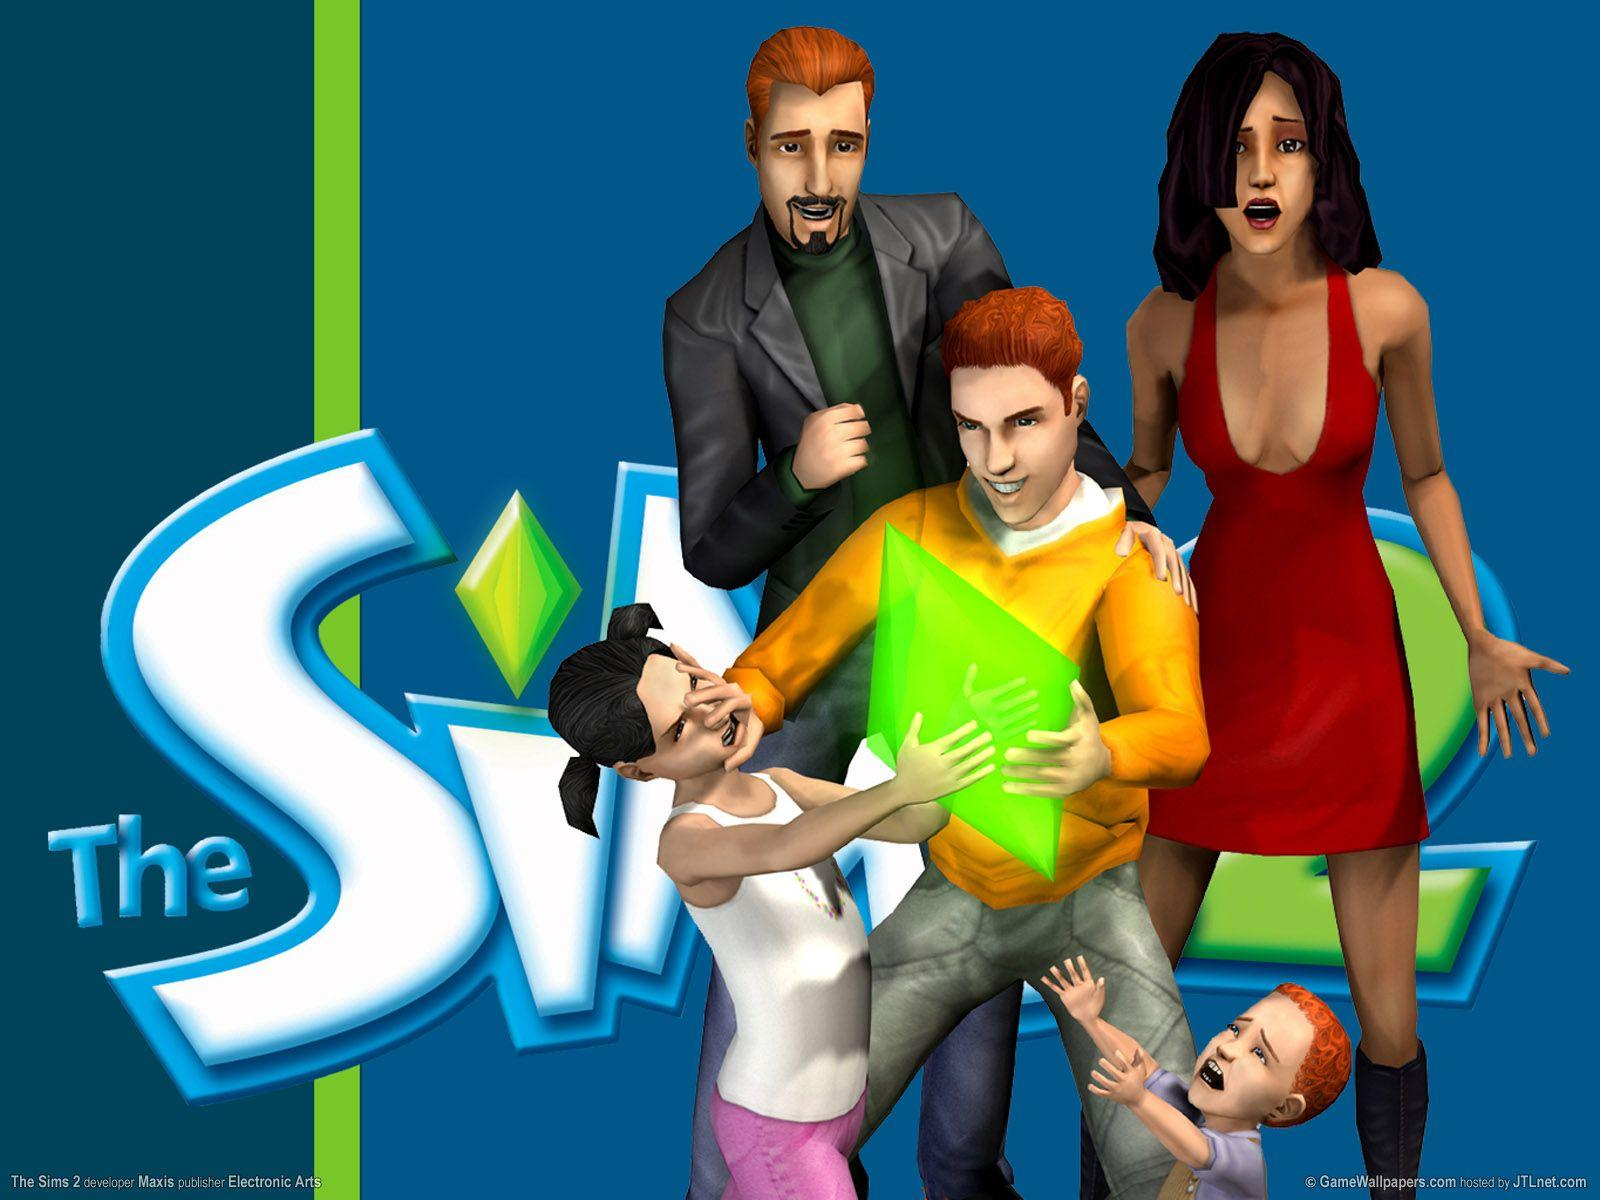 Wallpapers blue, The Sims 2, The Sims 2